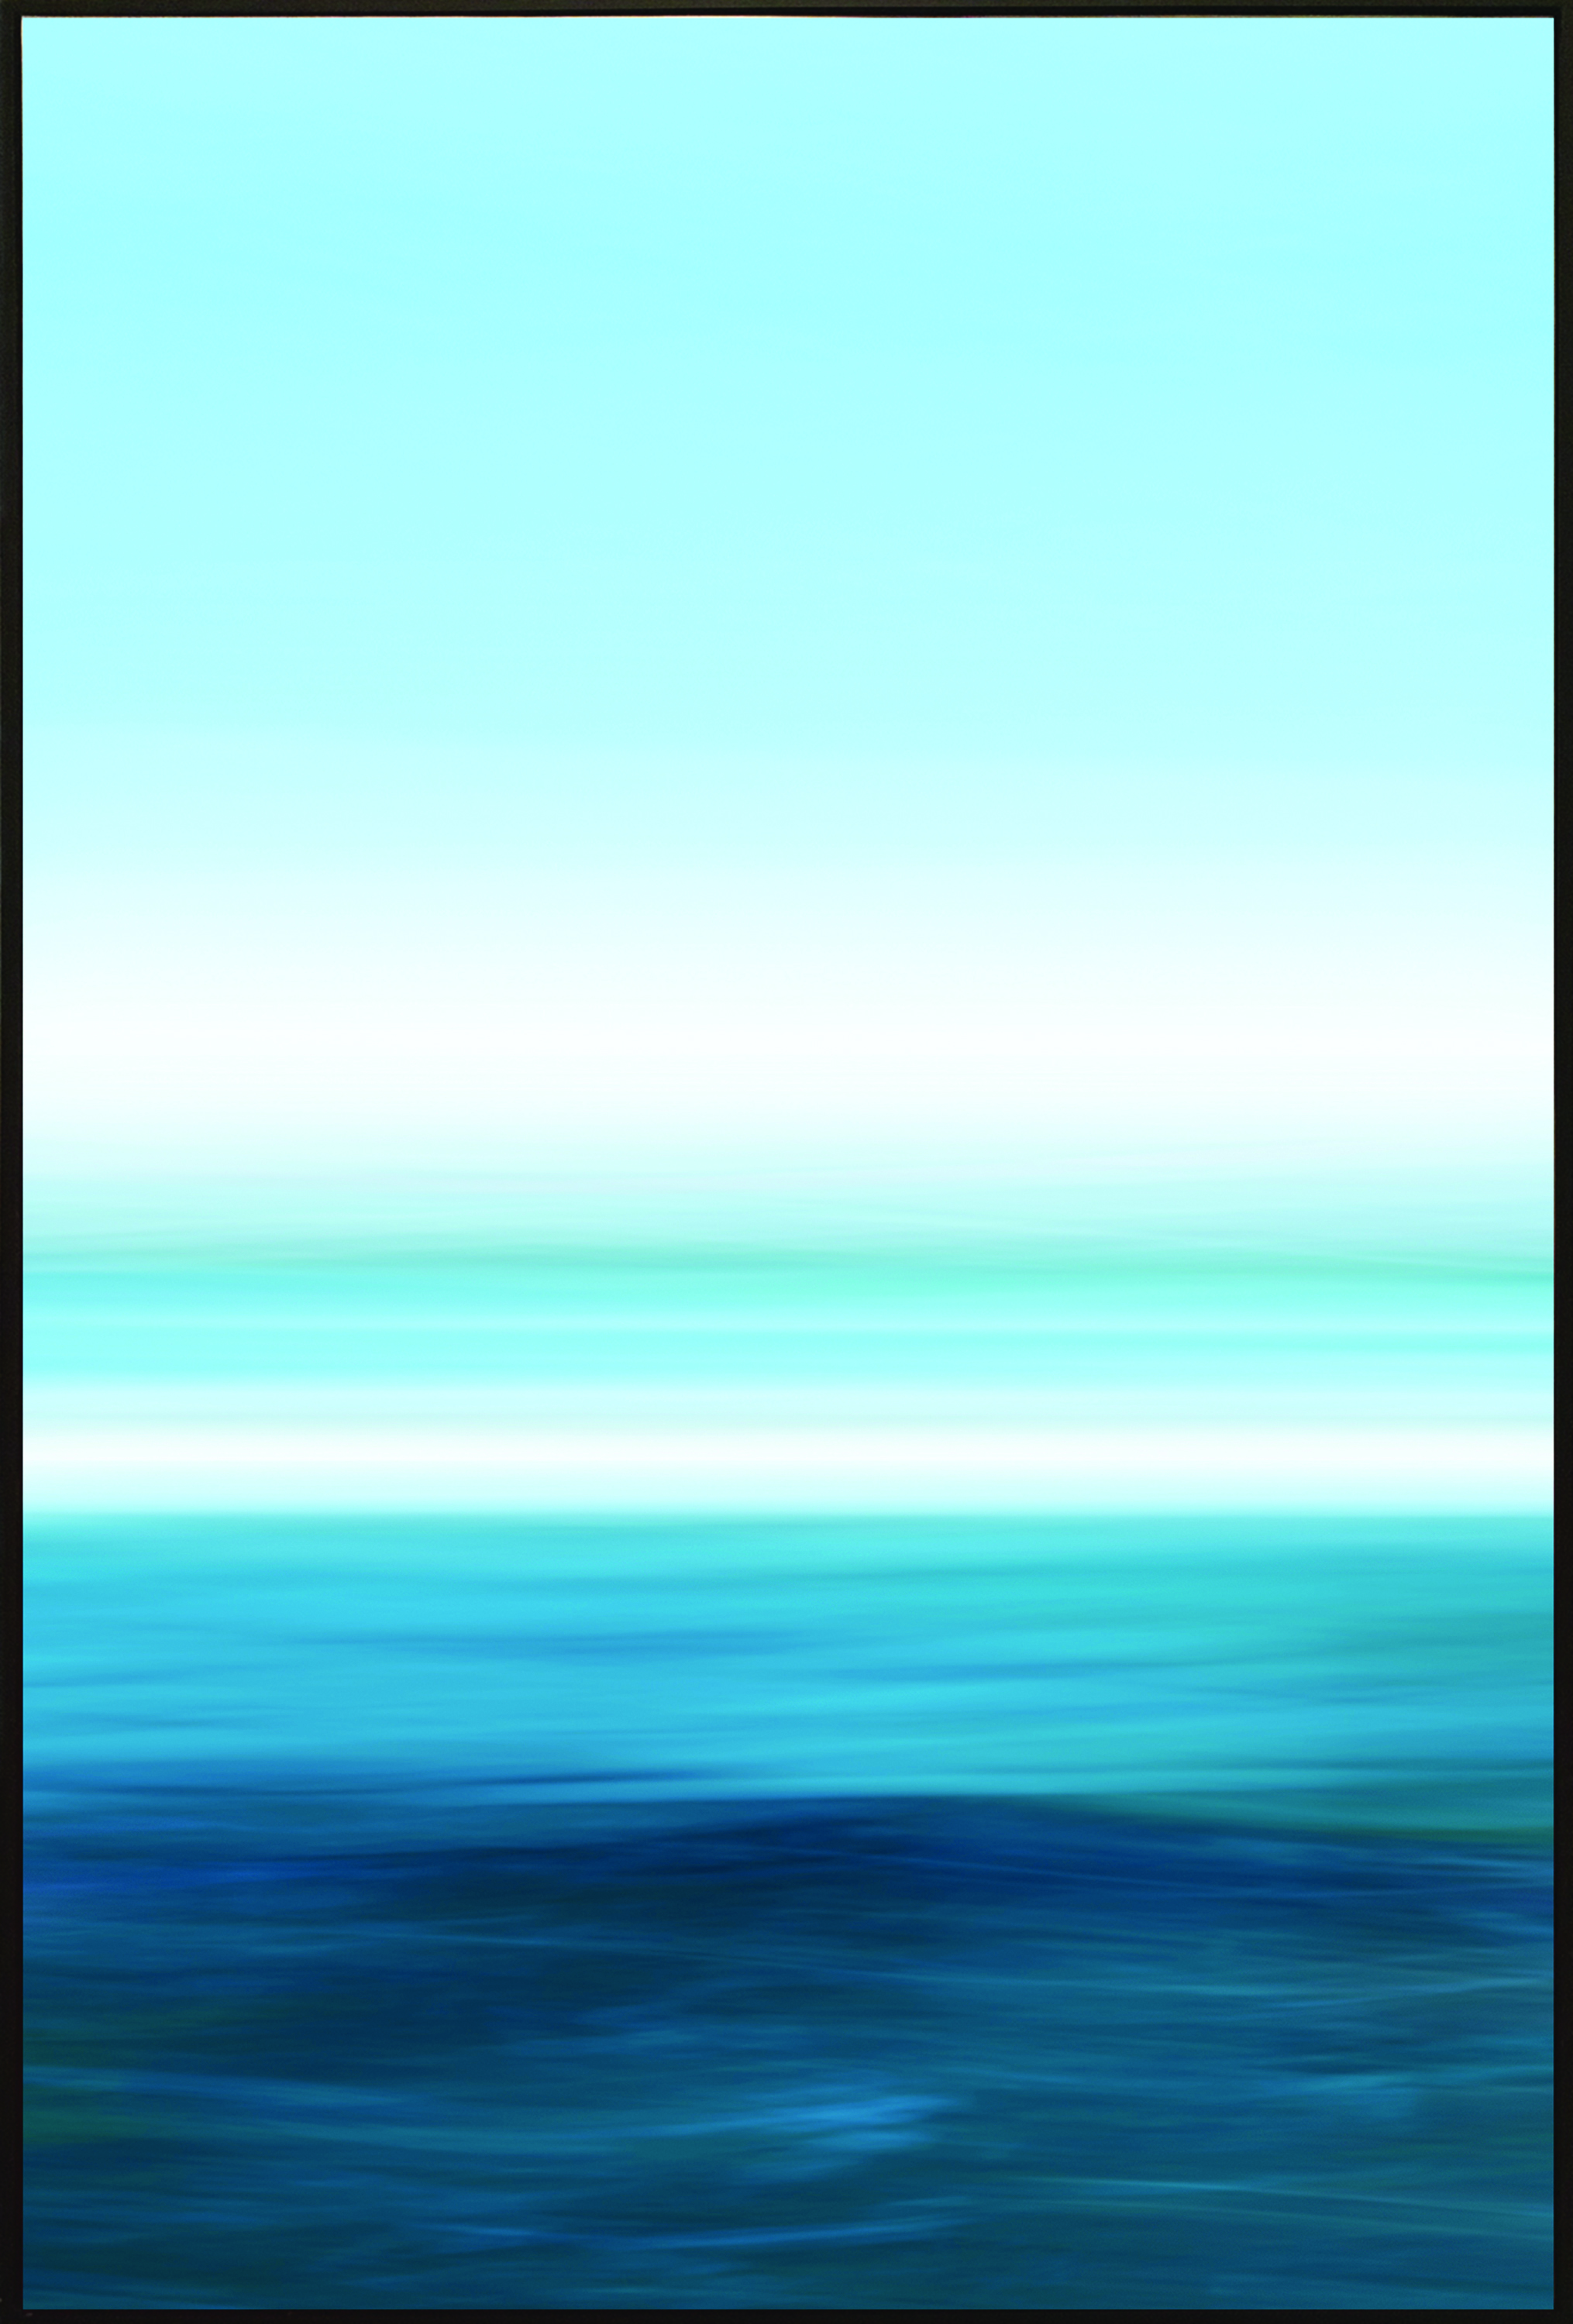 """HORIZON_08-LA   ,      Archival Giclee Print on 100% Cotton Paper with Protective Coating, 54""""x 36"""".  Colorfield vertical abstraction seascape with blue and white horizon in upper half."""